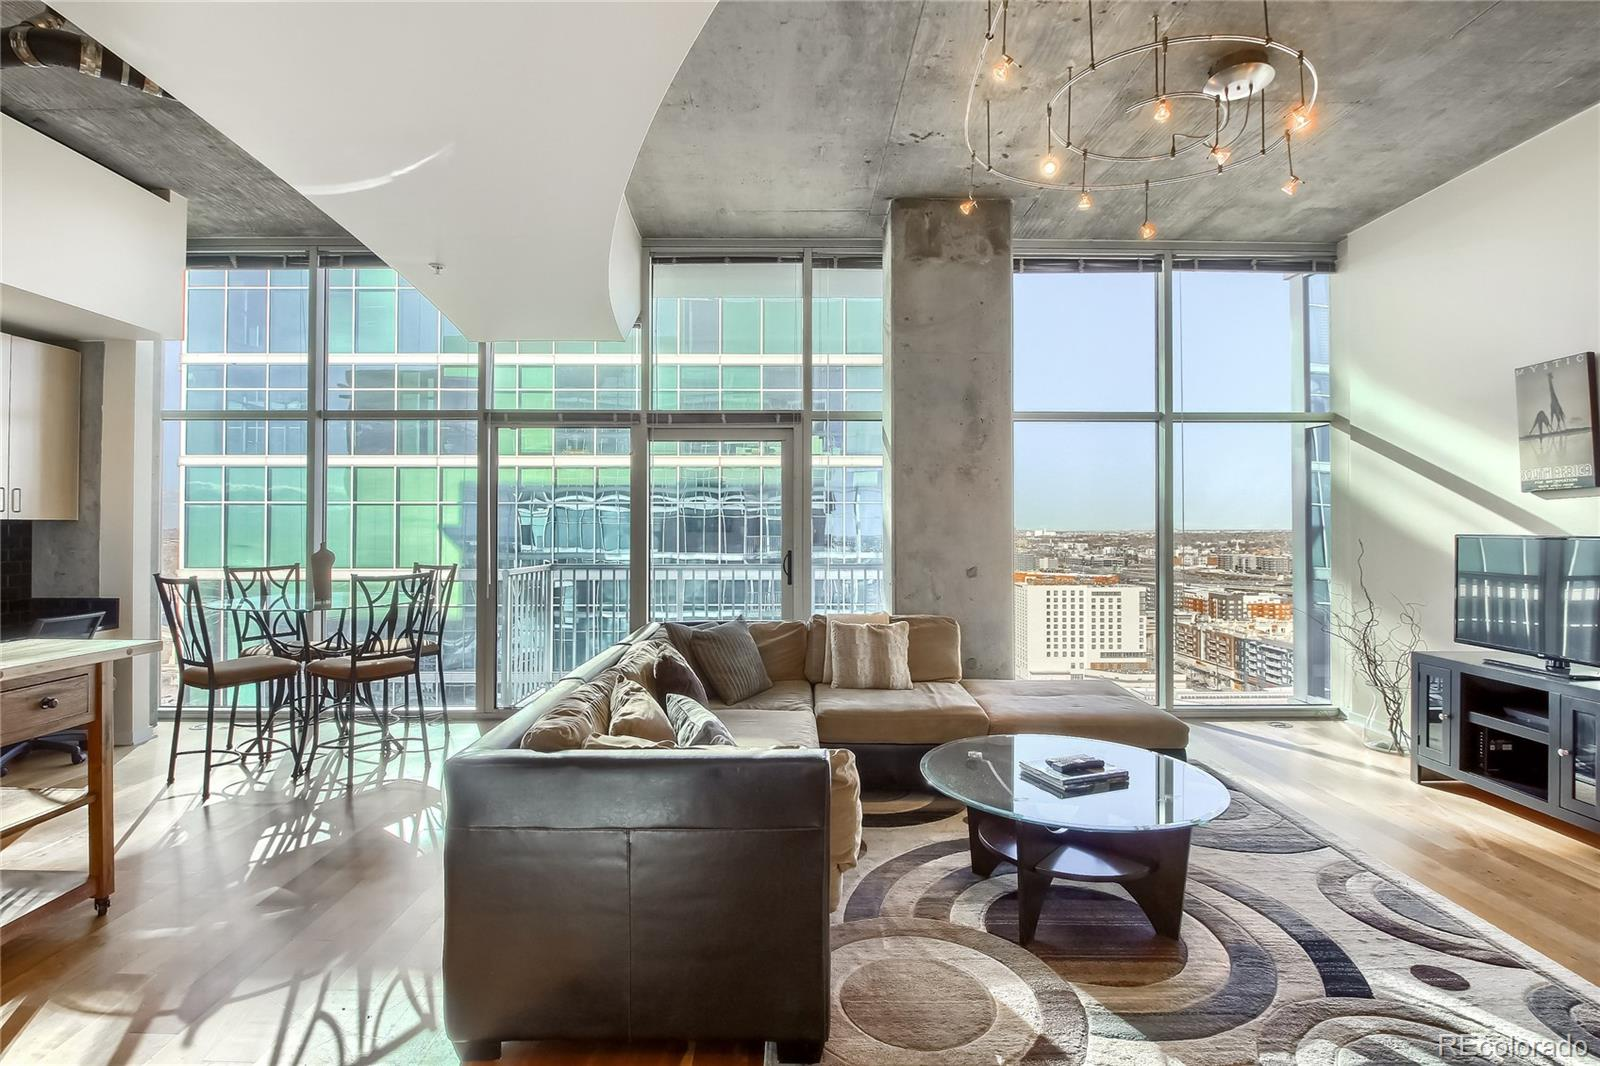 Simply the best one bedroom floor plan in the entire building. Welcome to your 21st-floor Riverfront Park Penthouse in Denver's best condo development. 